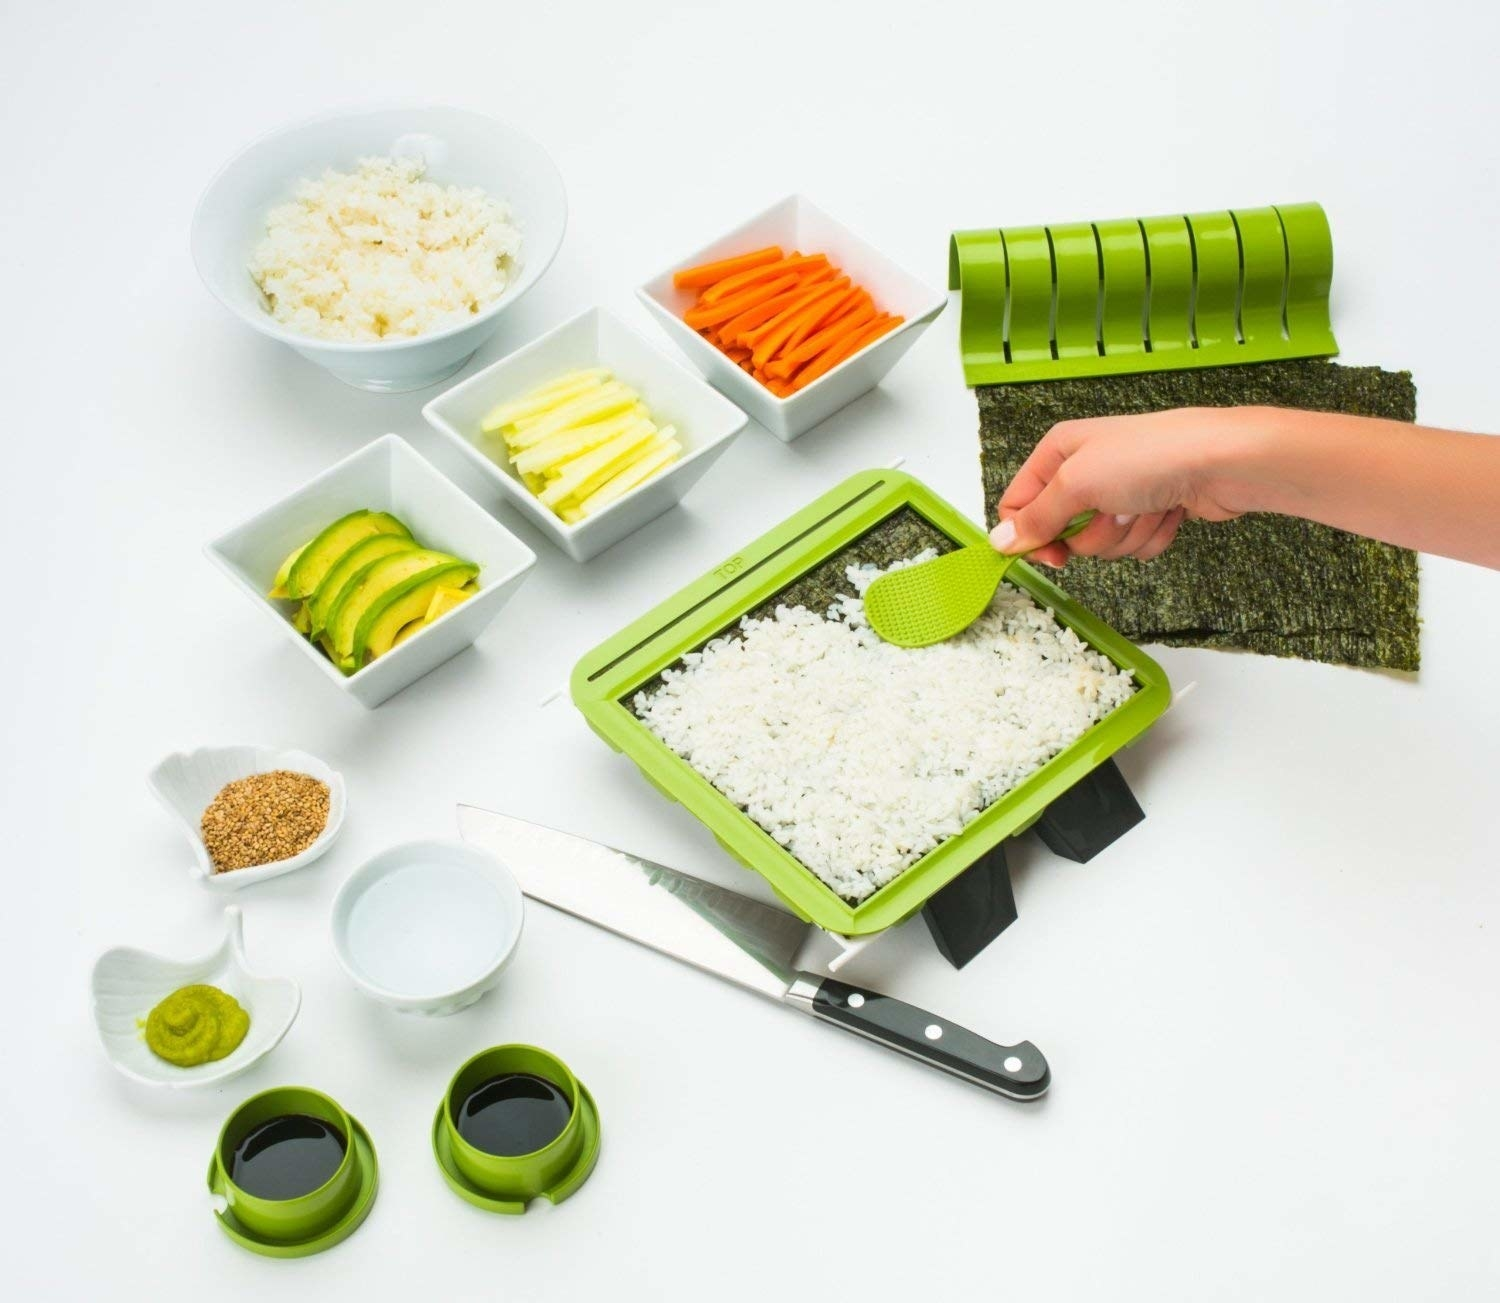 A person making sushi with the kit, including a tray and a roller for the rice